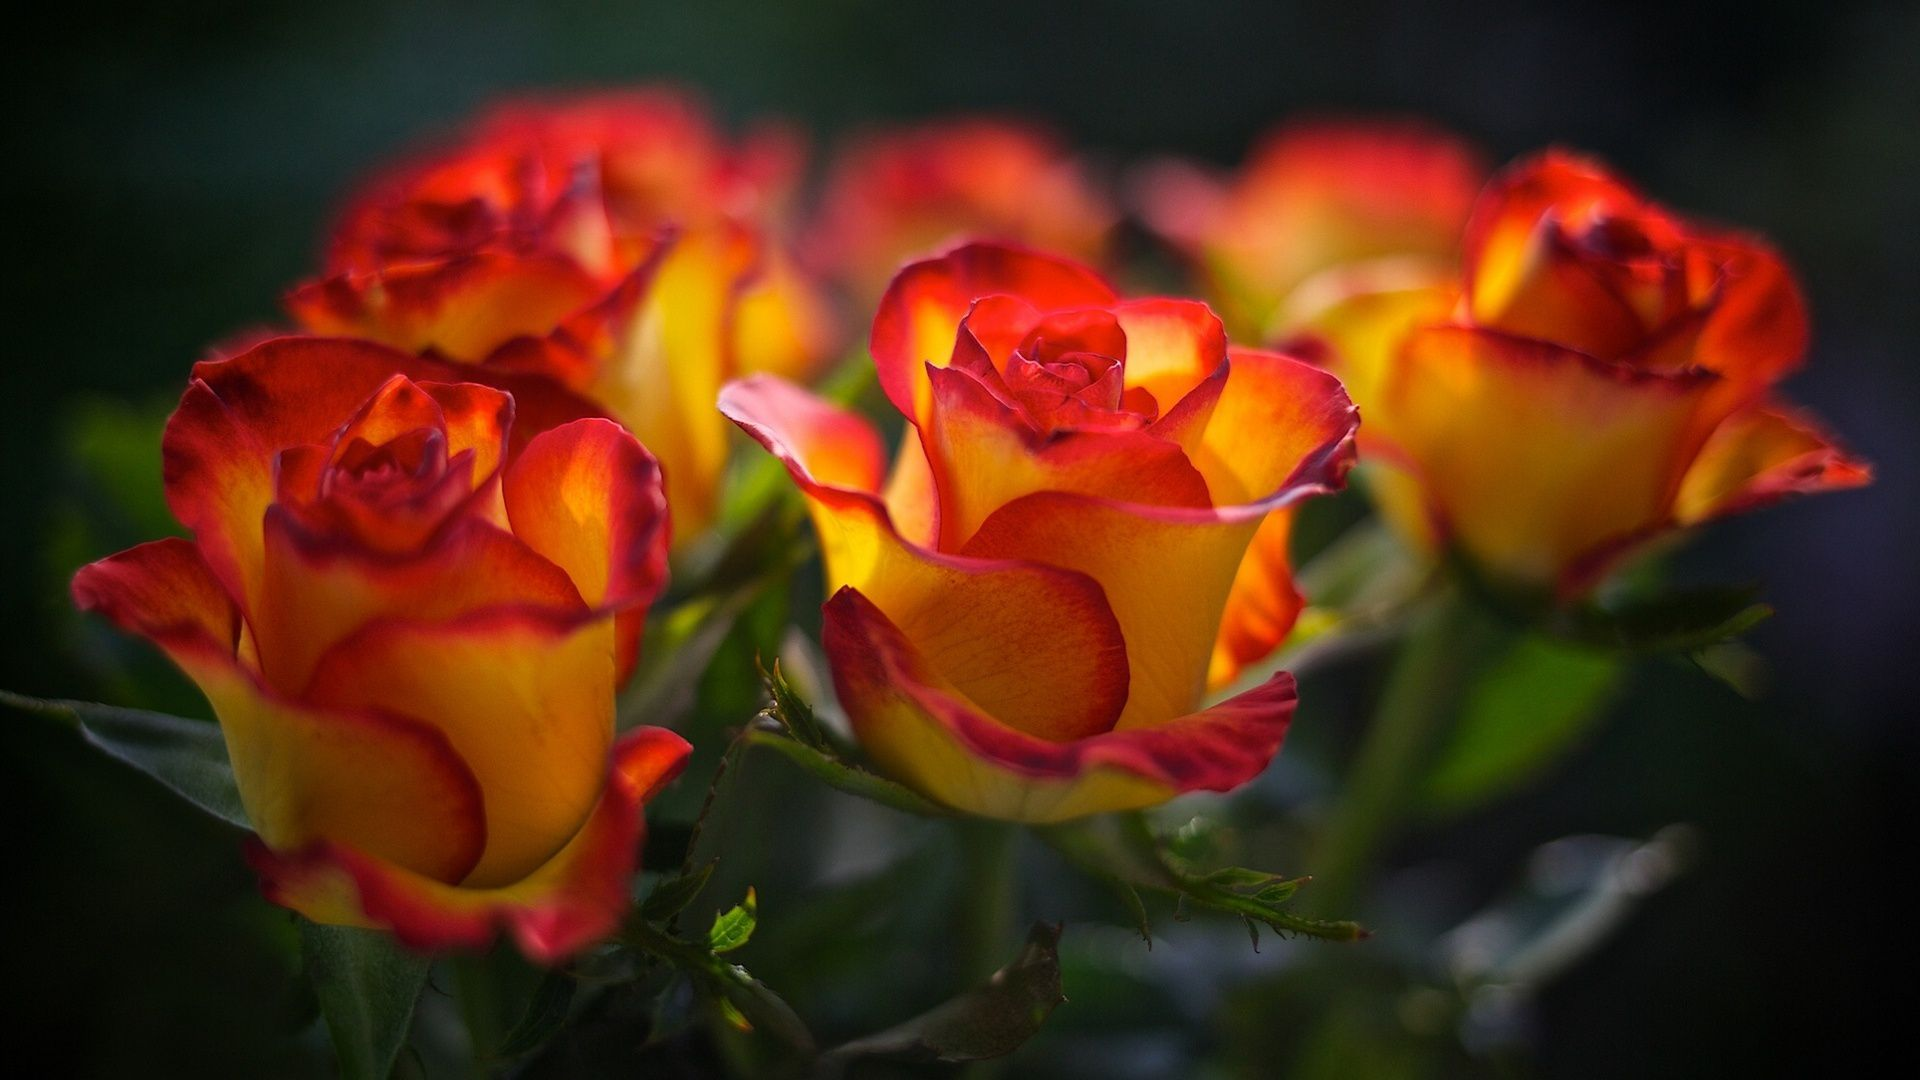 Rose Full HD Wallpaper and Background Image  1920x1080  ID592705